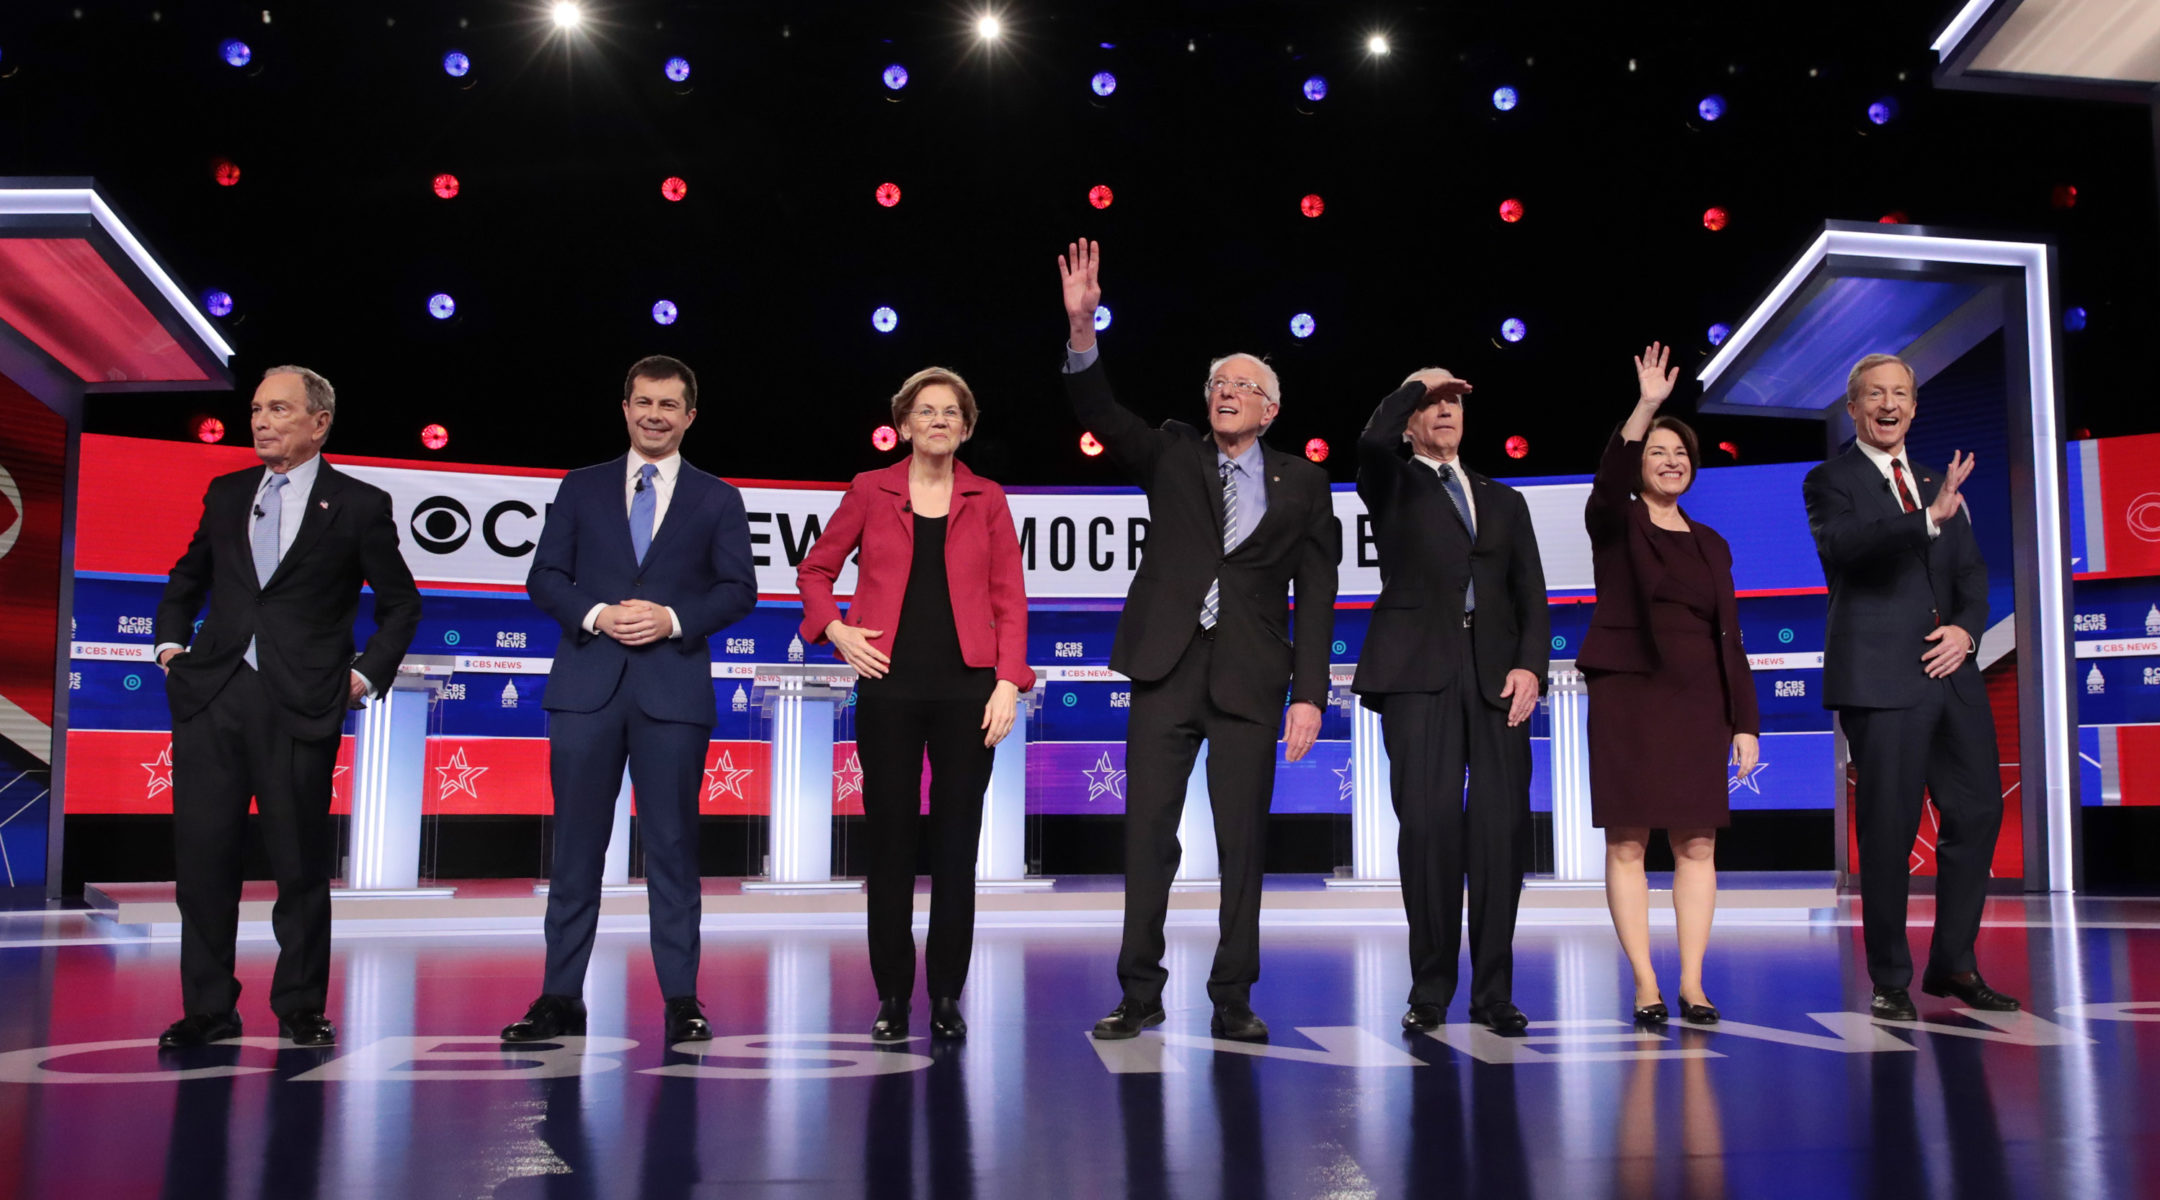 Democratic presidential candidates (L-R) former New York City Mayor Mike Bloomberg, former South Bend, Indiana Mayor Pete Buttigieg, Sen. Elizabeth Warren (D-MA), Sen. Bernie Sanders (I-VT), former Vice President Joe Biden, Sen. Amy Klobuchar (D-MN), and Tom Steyer arrive on stage for the Democratic presidential primary debate on Feb. 25, 2020 in Charleston, South Carolina. (JTA/Scott Olson/Getty Images)